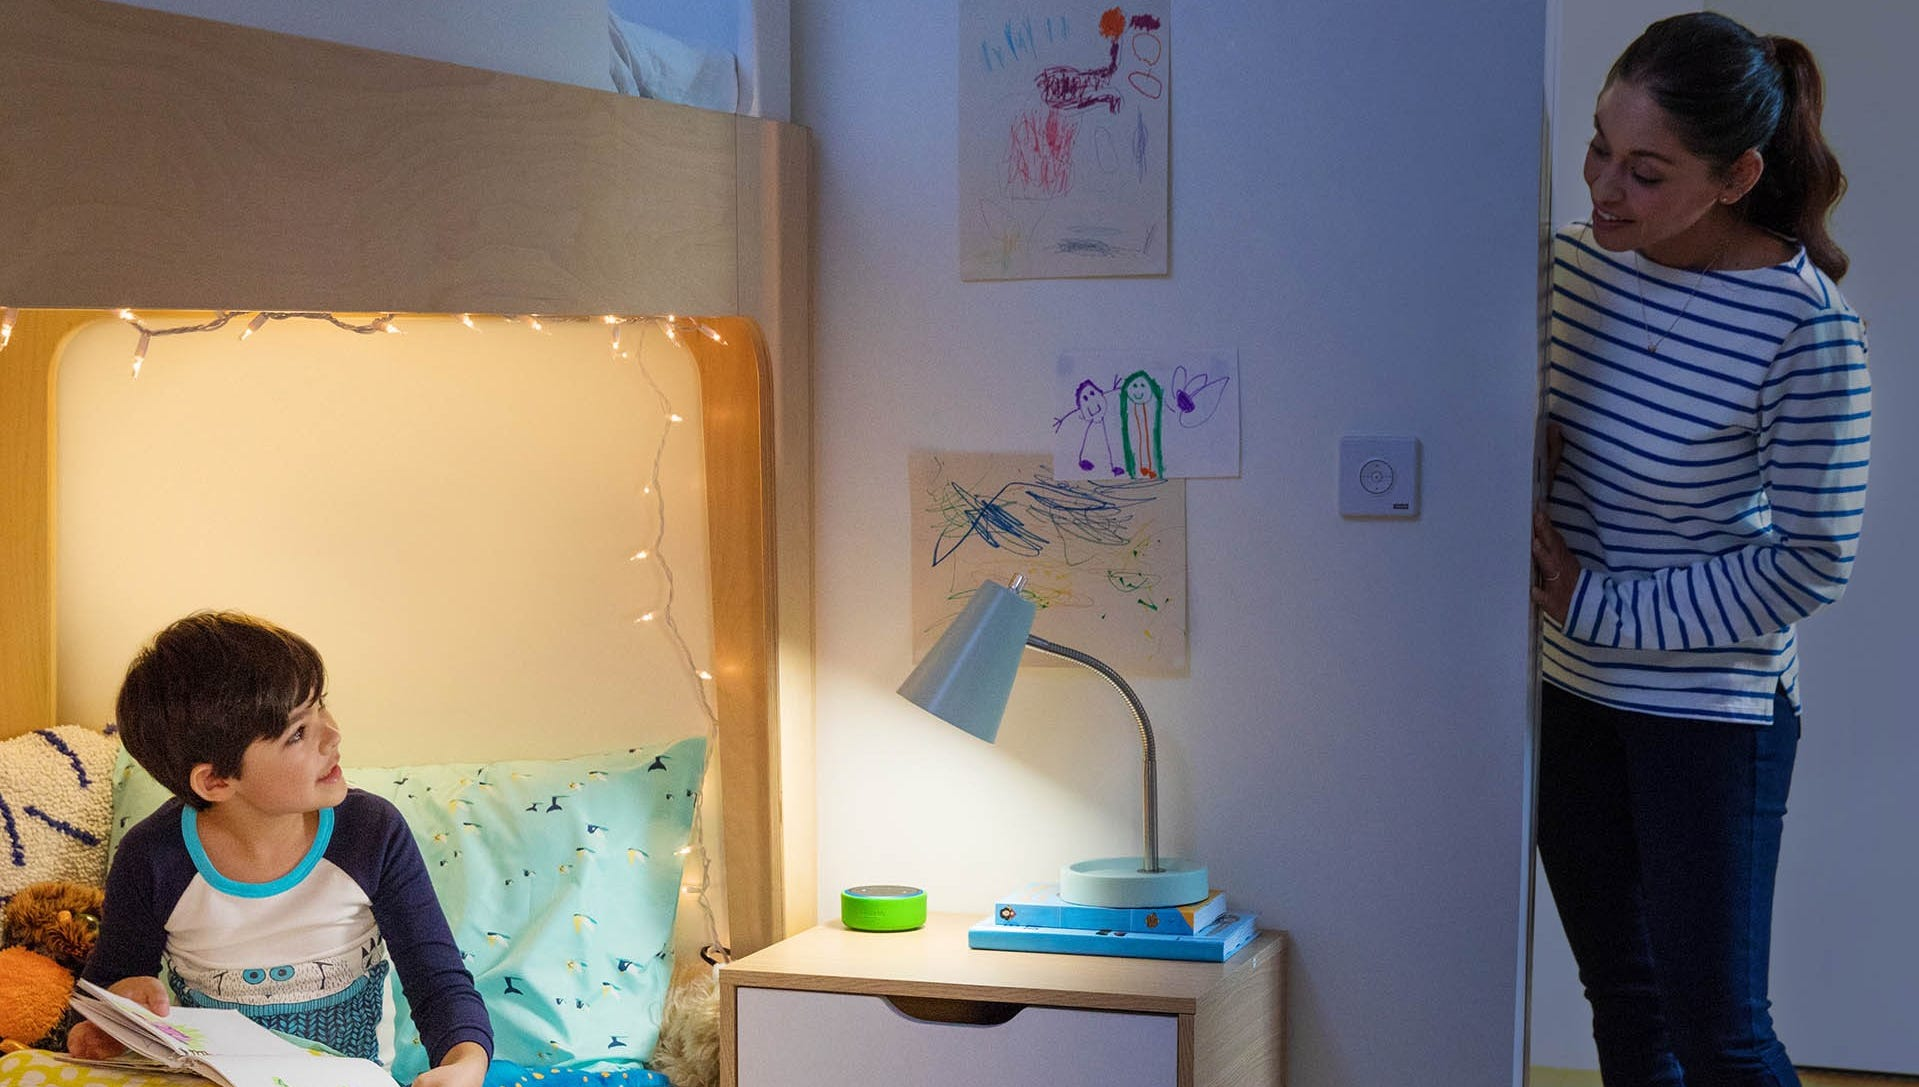 Alexa to the rescue: the Echo can be used in your child's bedroom as an intercom system to talk to them, or Alexa can read to your son or daughter before bed.